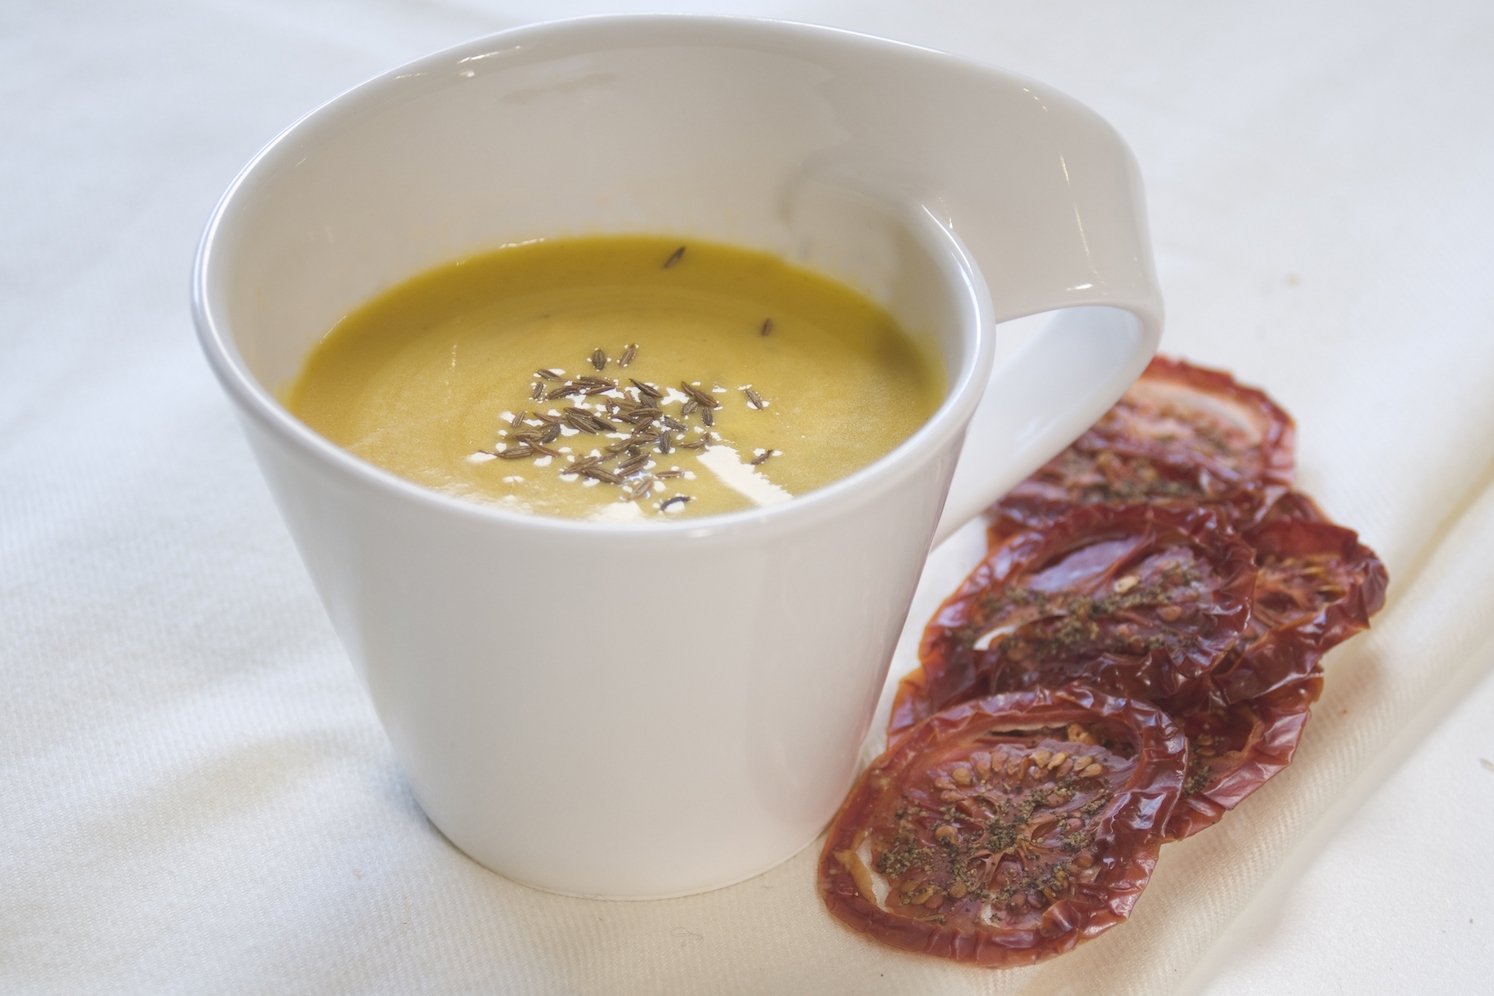 carrot and saffron soup with roasted tomato crisps -